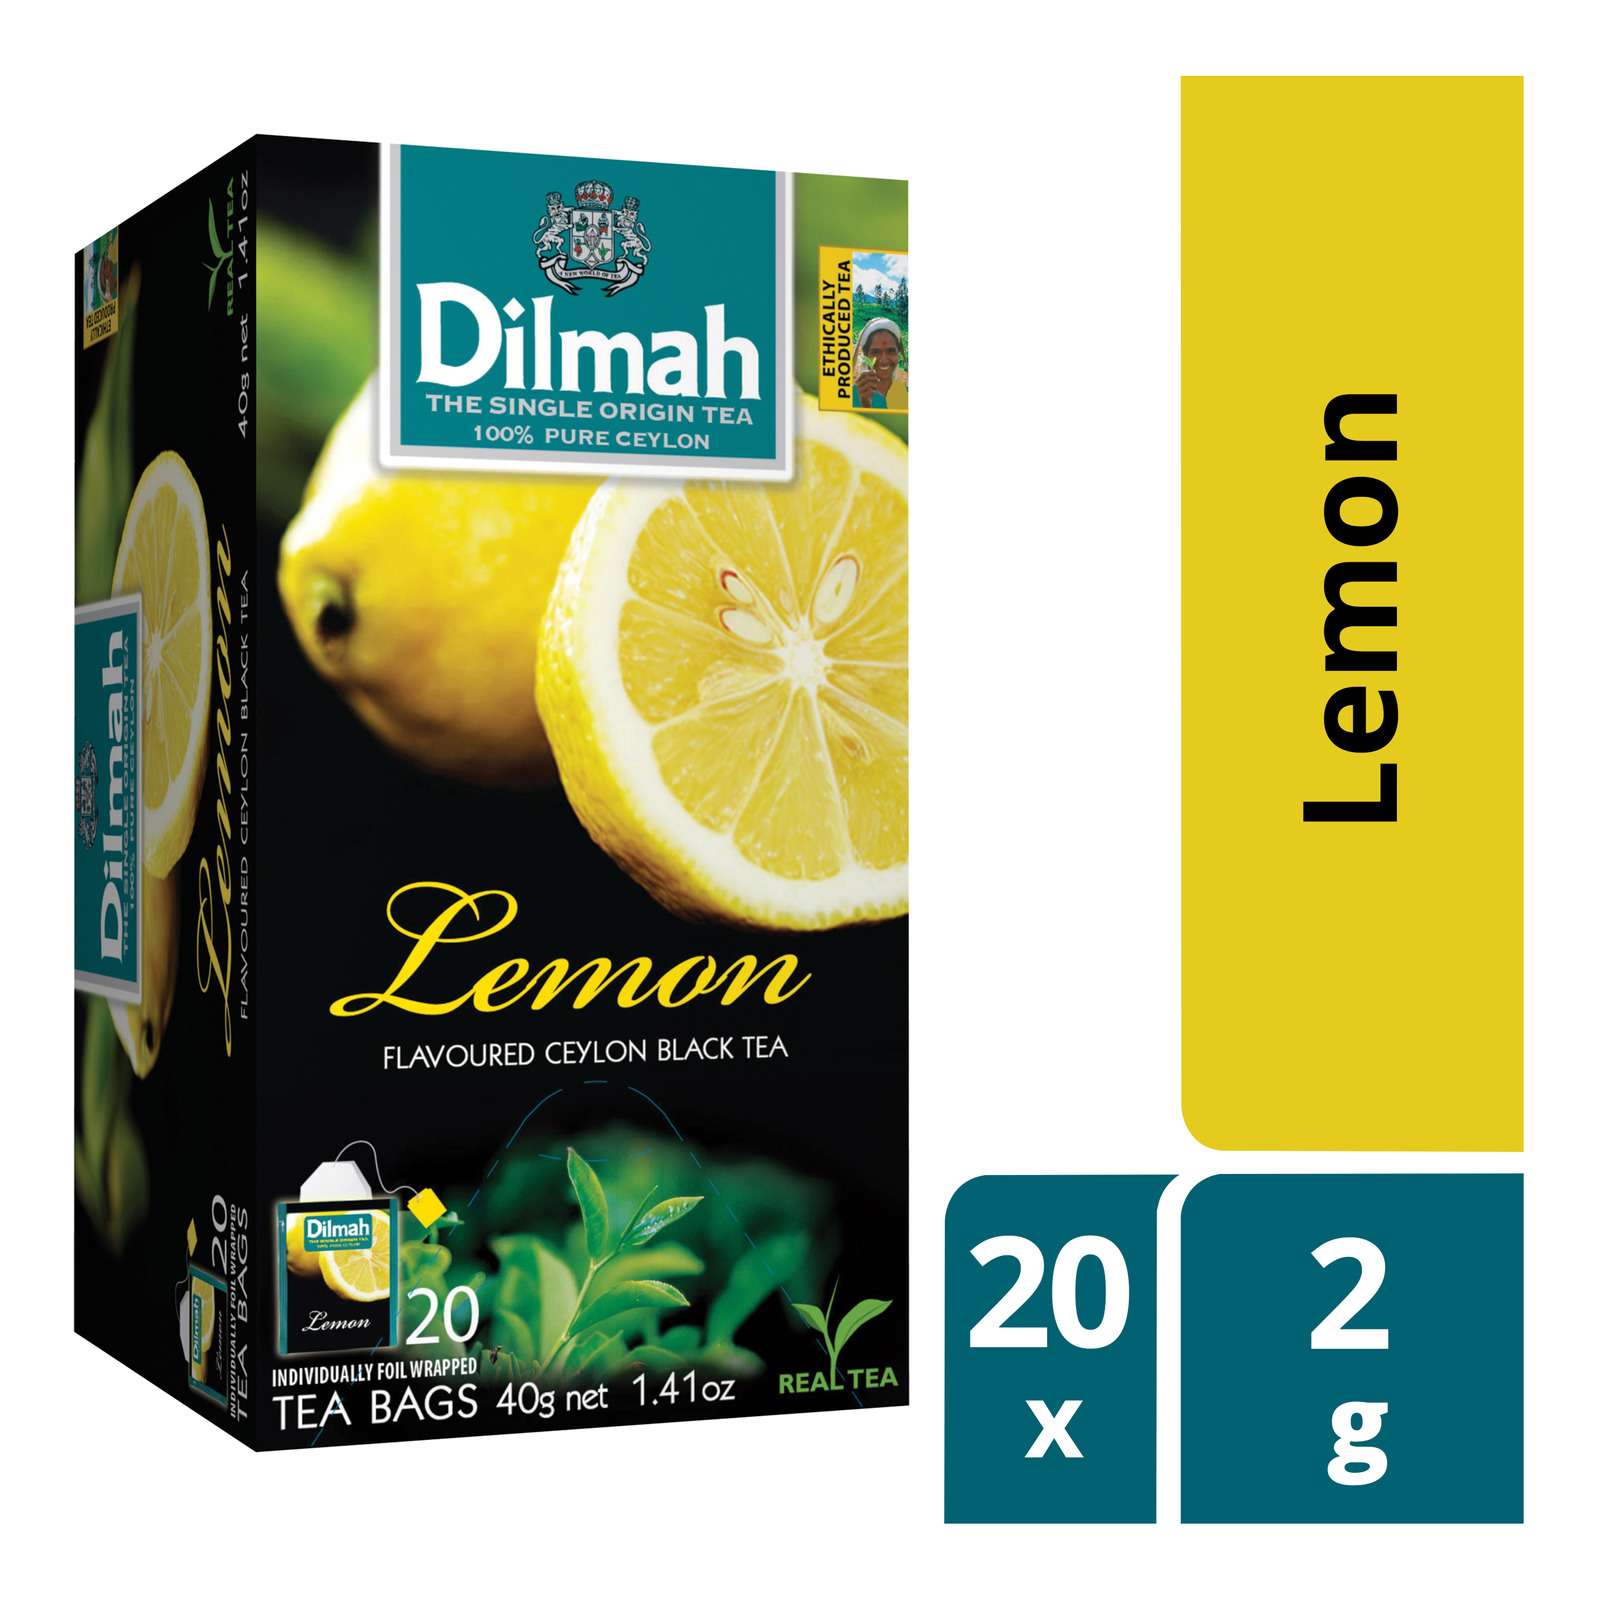 DILMAH Tea Bags - Lemon Flavoured Ceylon Black Tea 20sX2g